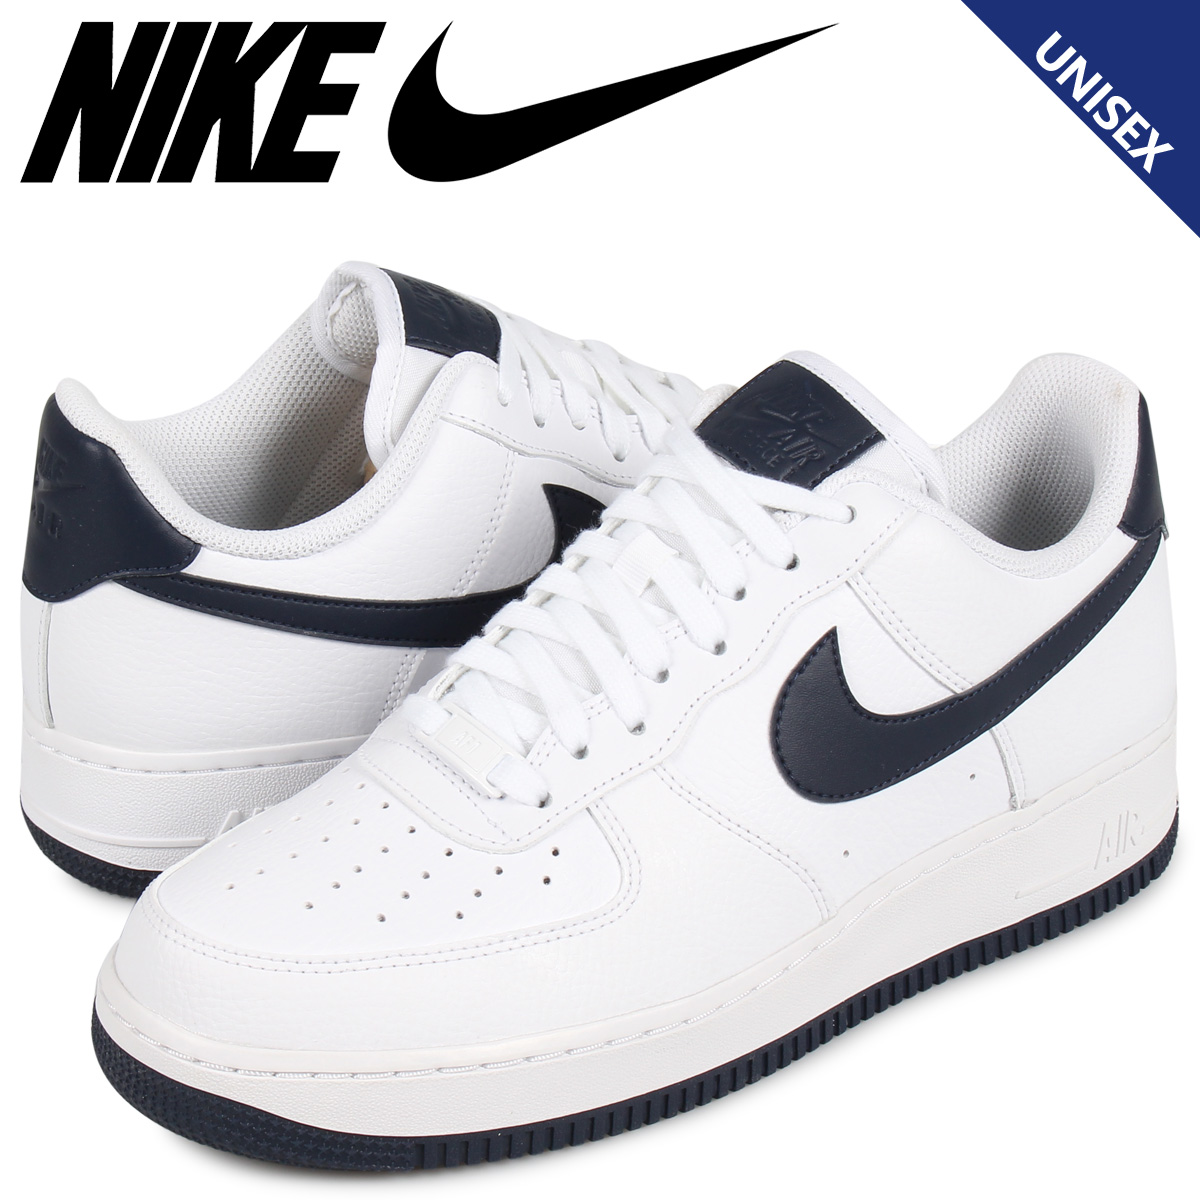 NIKE AIR FORCE 1 LOW QS SWOOSH PACK Nike air force 1 sneakers men AH8462 102 white [load planned Shinnyu load in reservation product 38 containing]